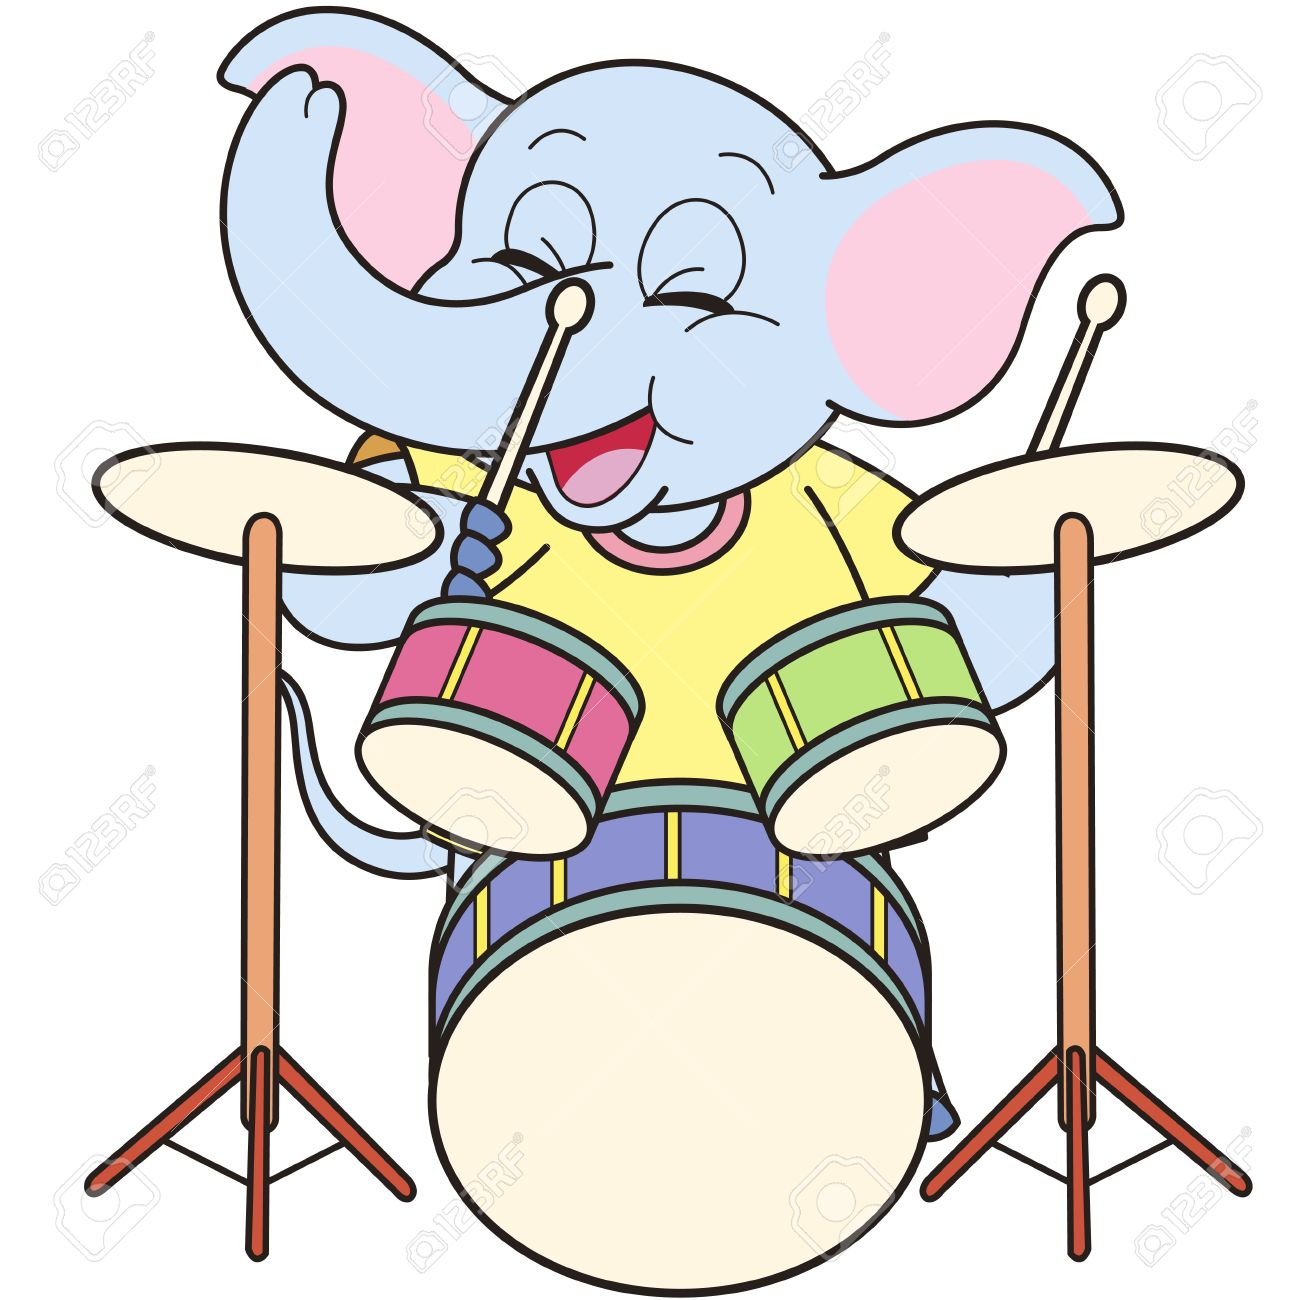 1,801 Playing Drums Stock Vector Illustration And Royalty Free.